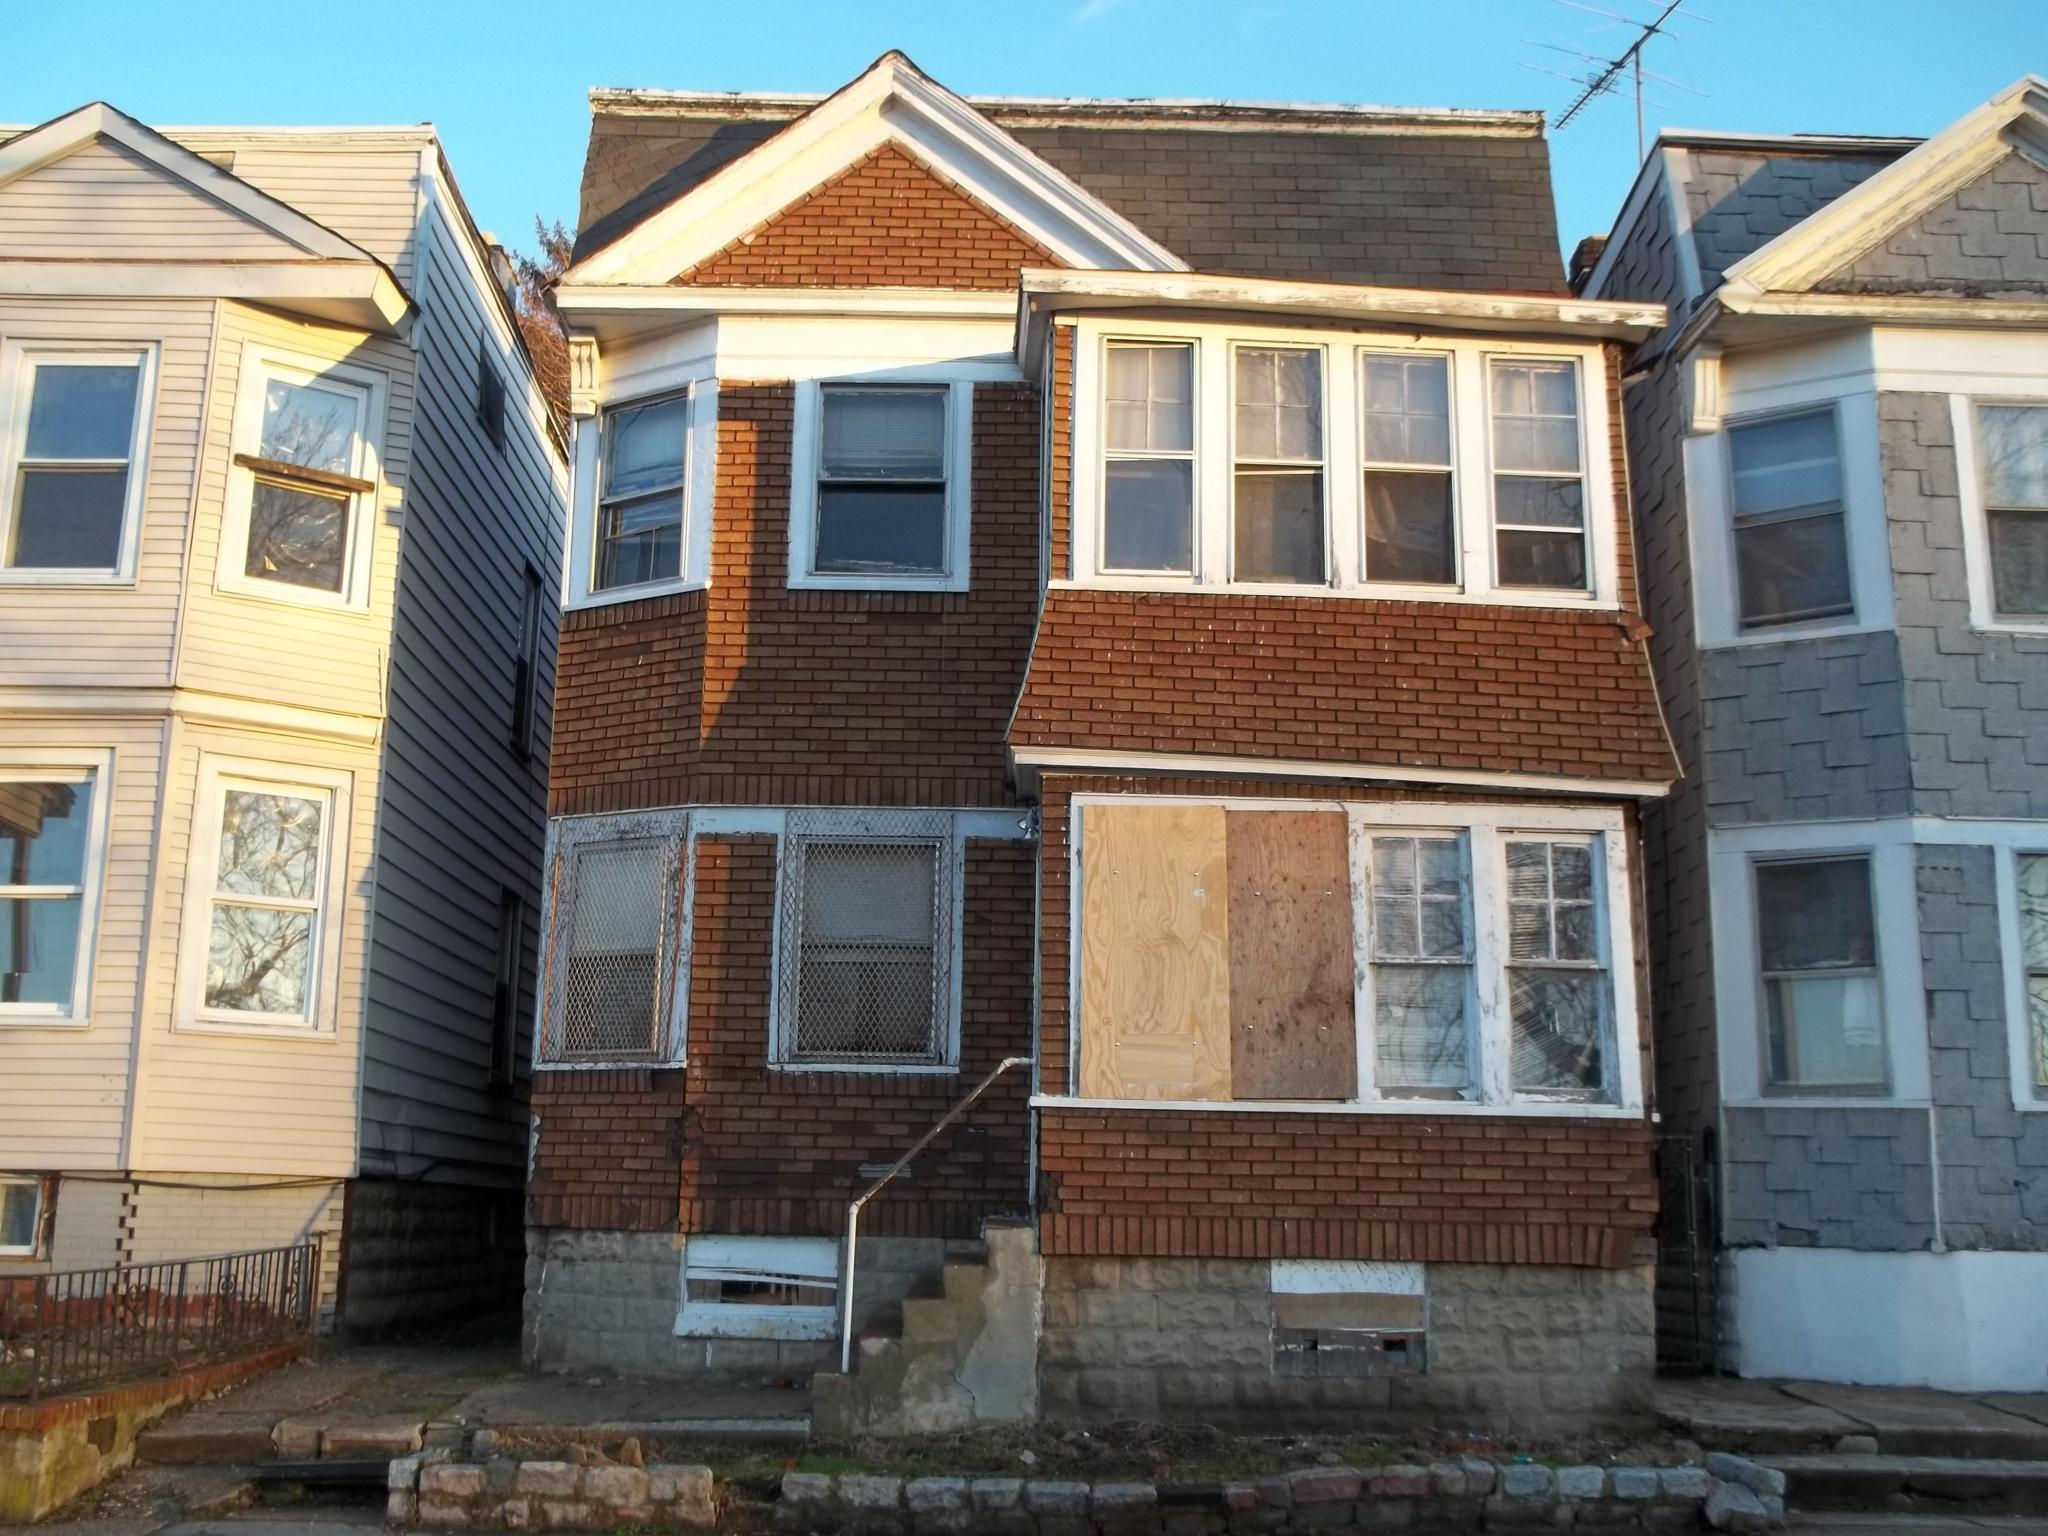 158 S 12th St Newark NJ Estimate and Home Details